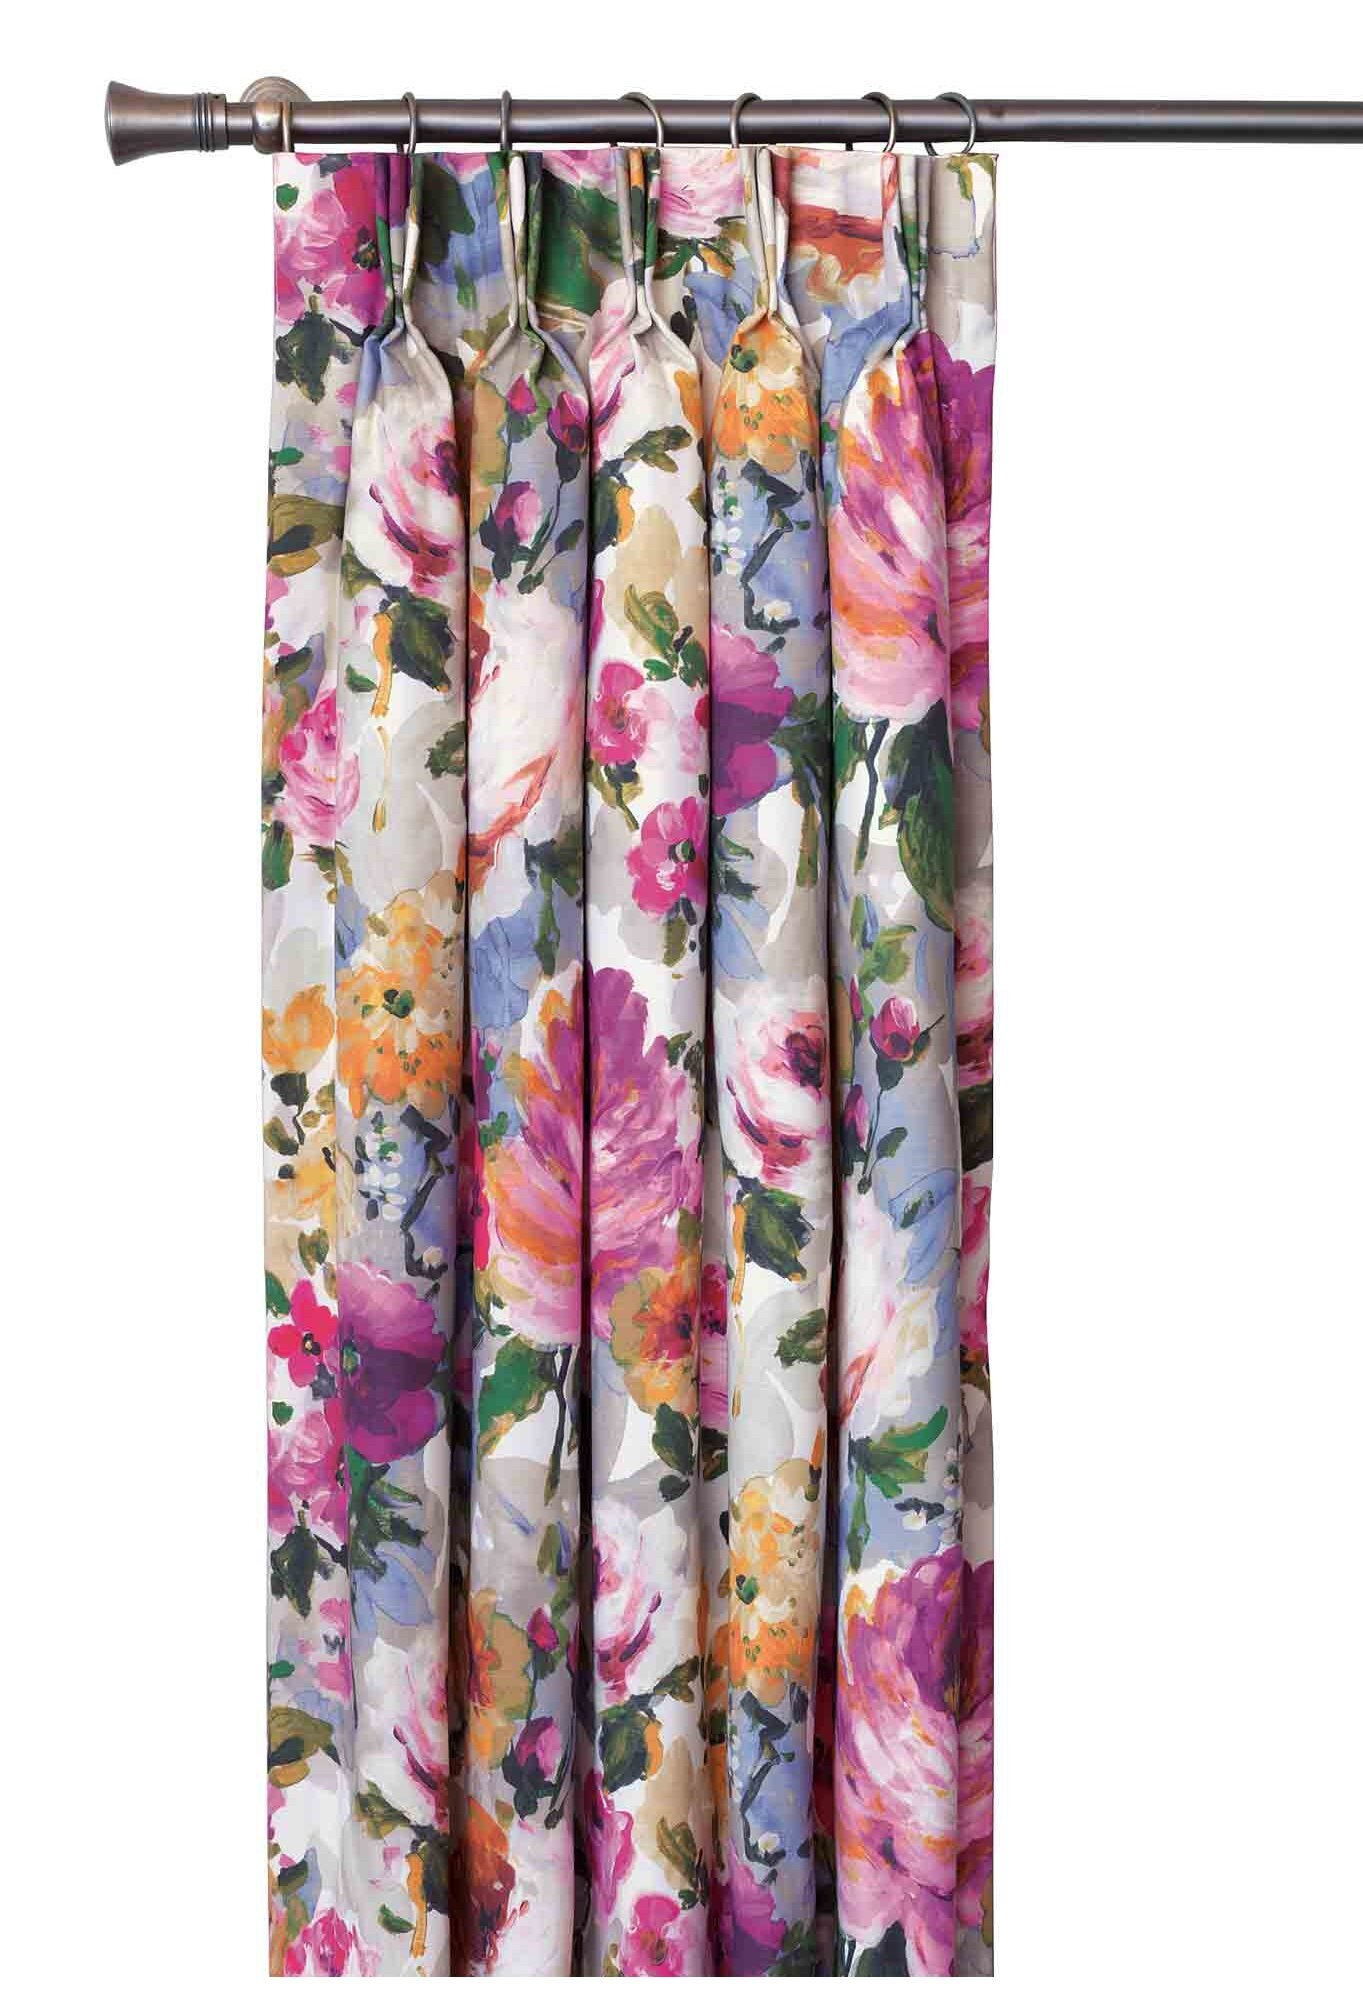 Eastern Accents Cora Floral Room Darkening Thermal Pinch Pleat Single Curtain Panel Perigold